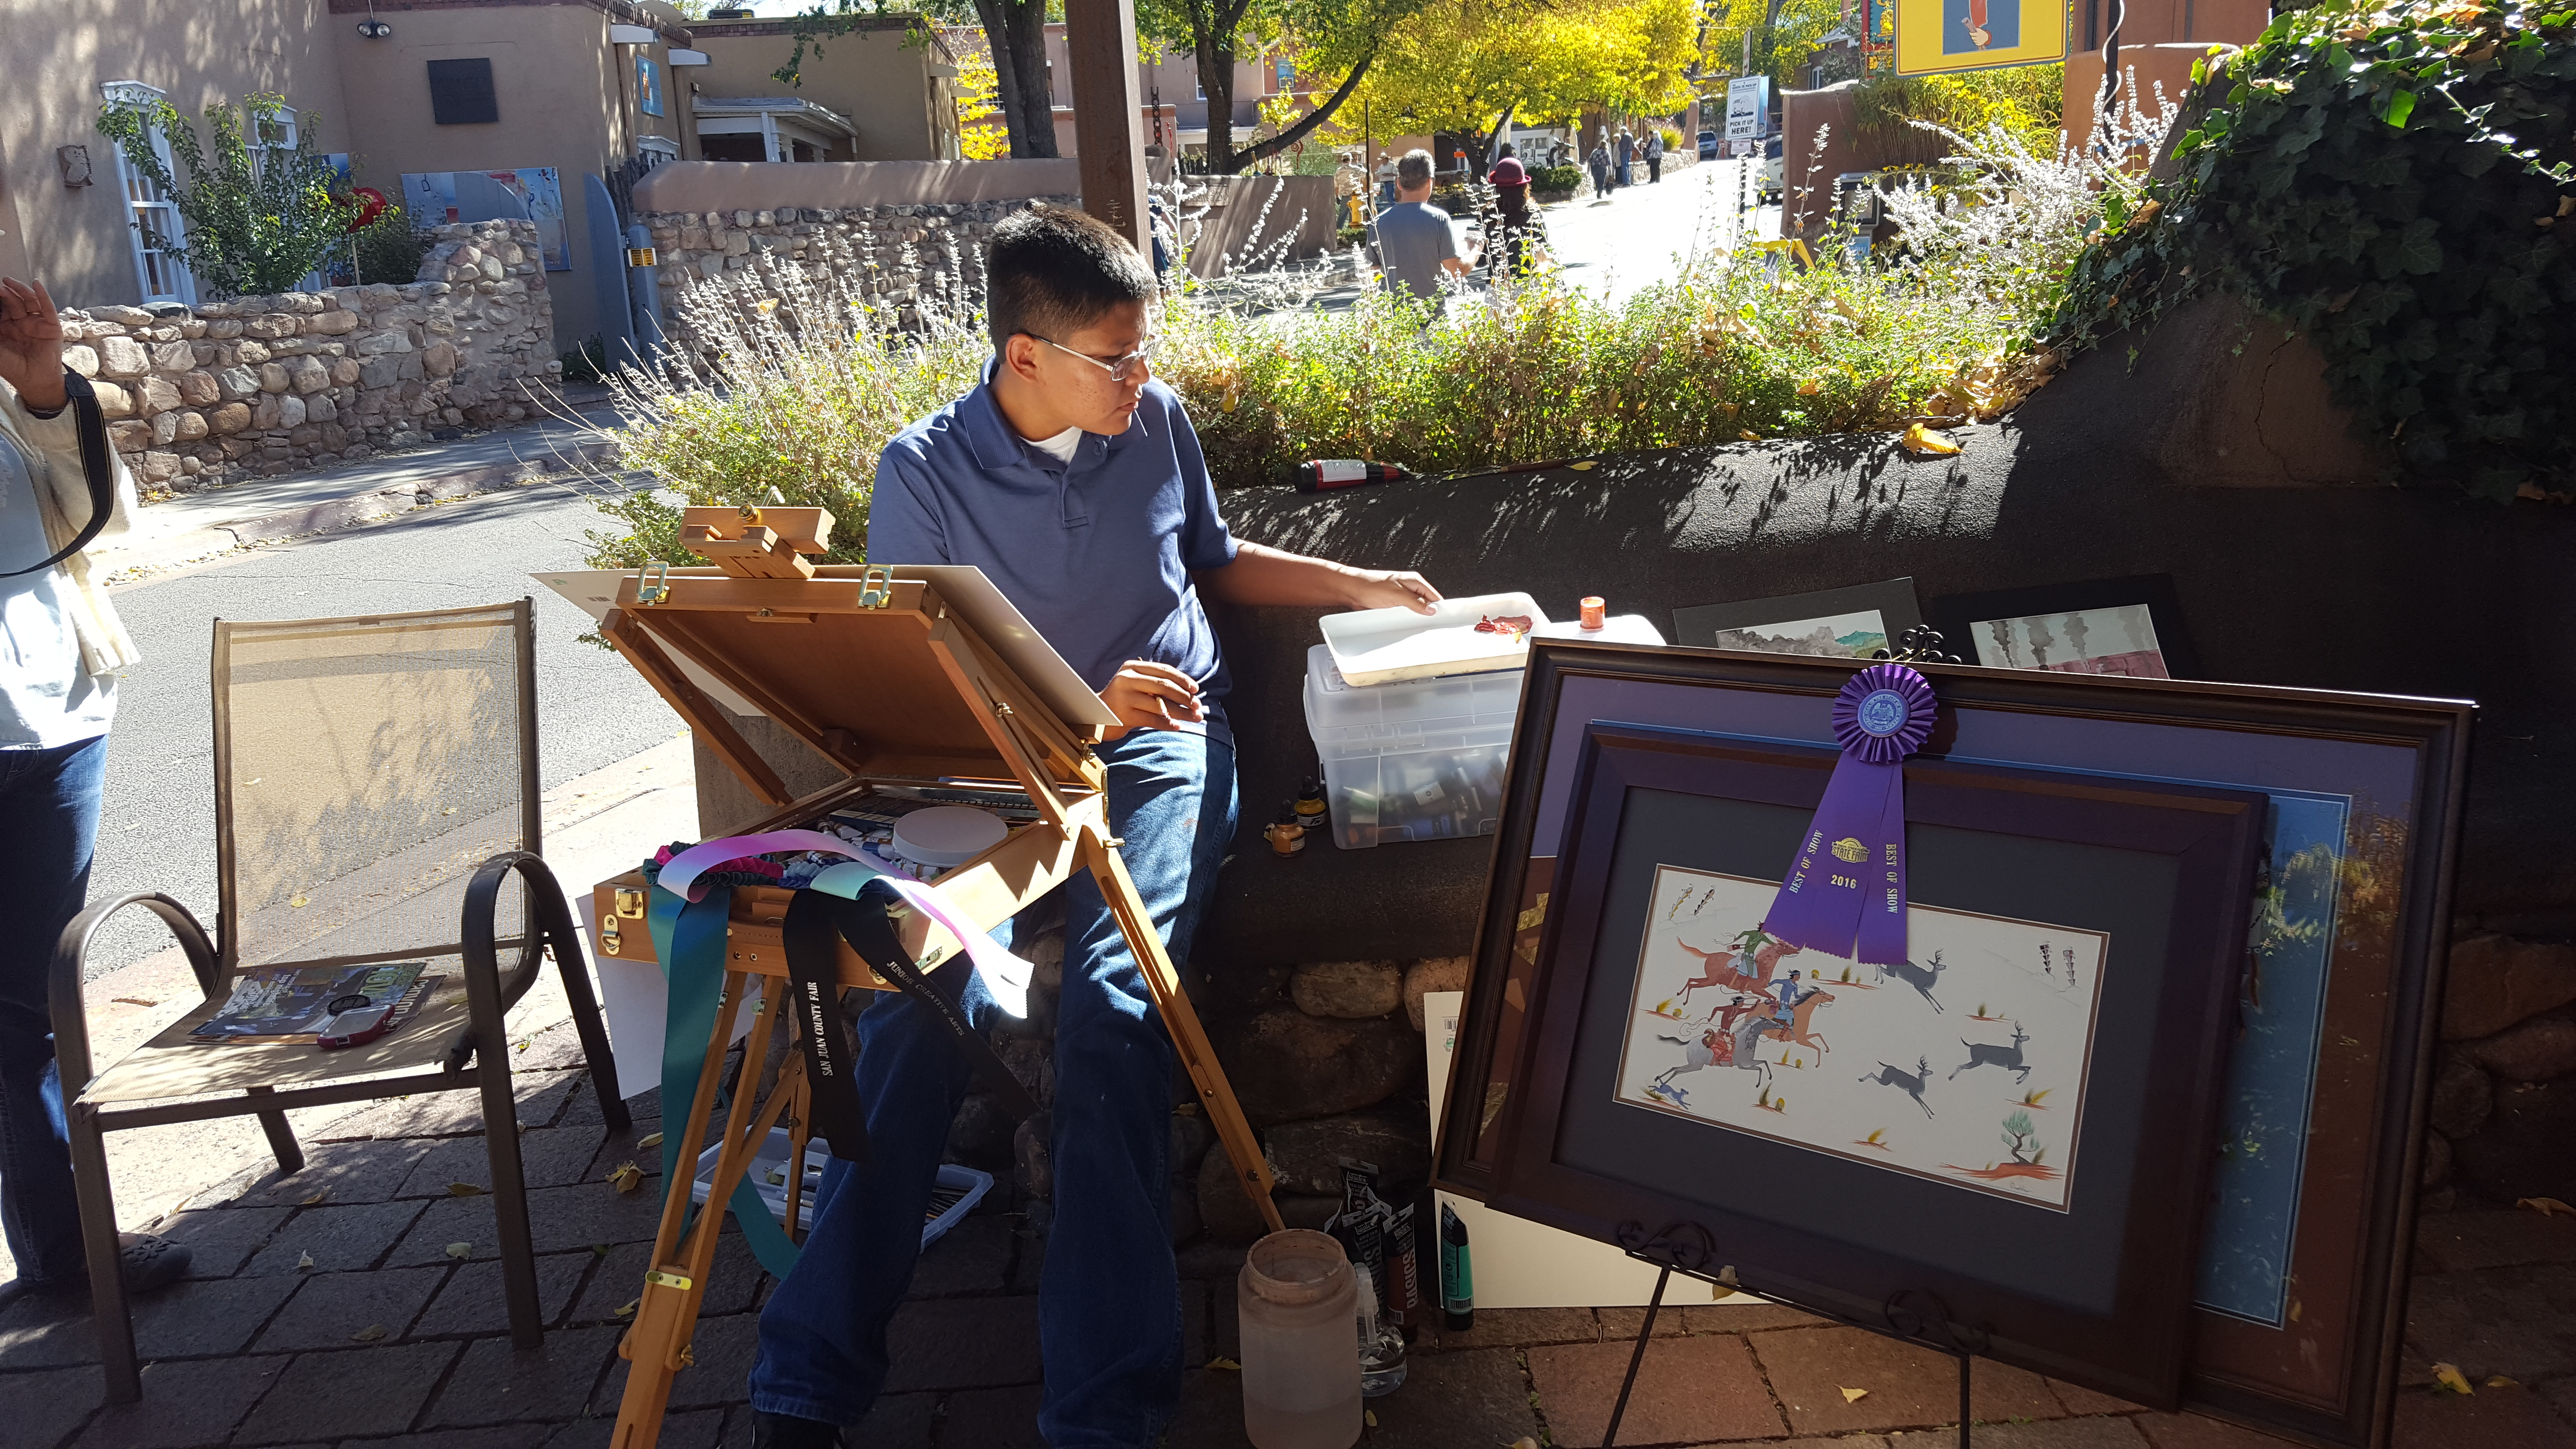 Myron Denetclaw (2000 - ) painting in front of Adobe Gallery during the Canyon Road Paint Out.